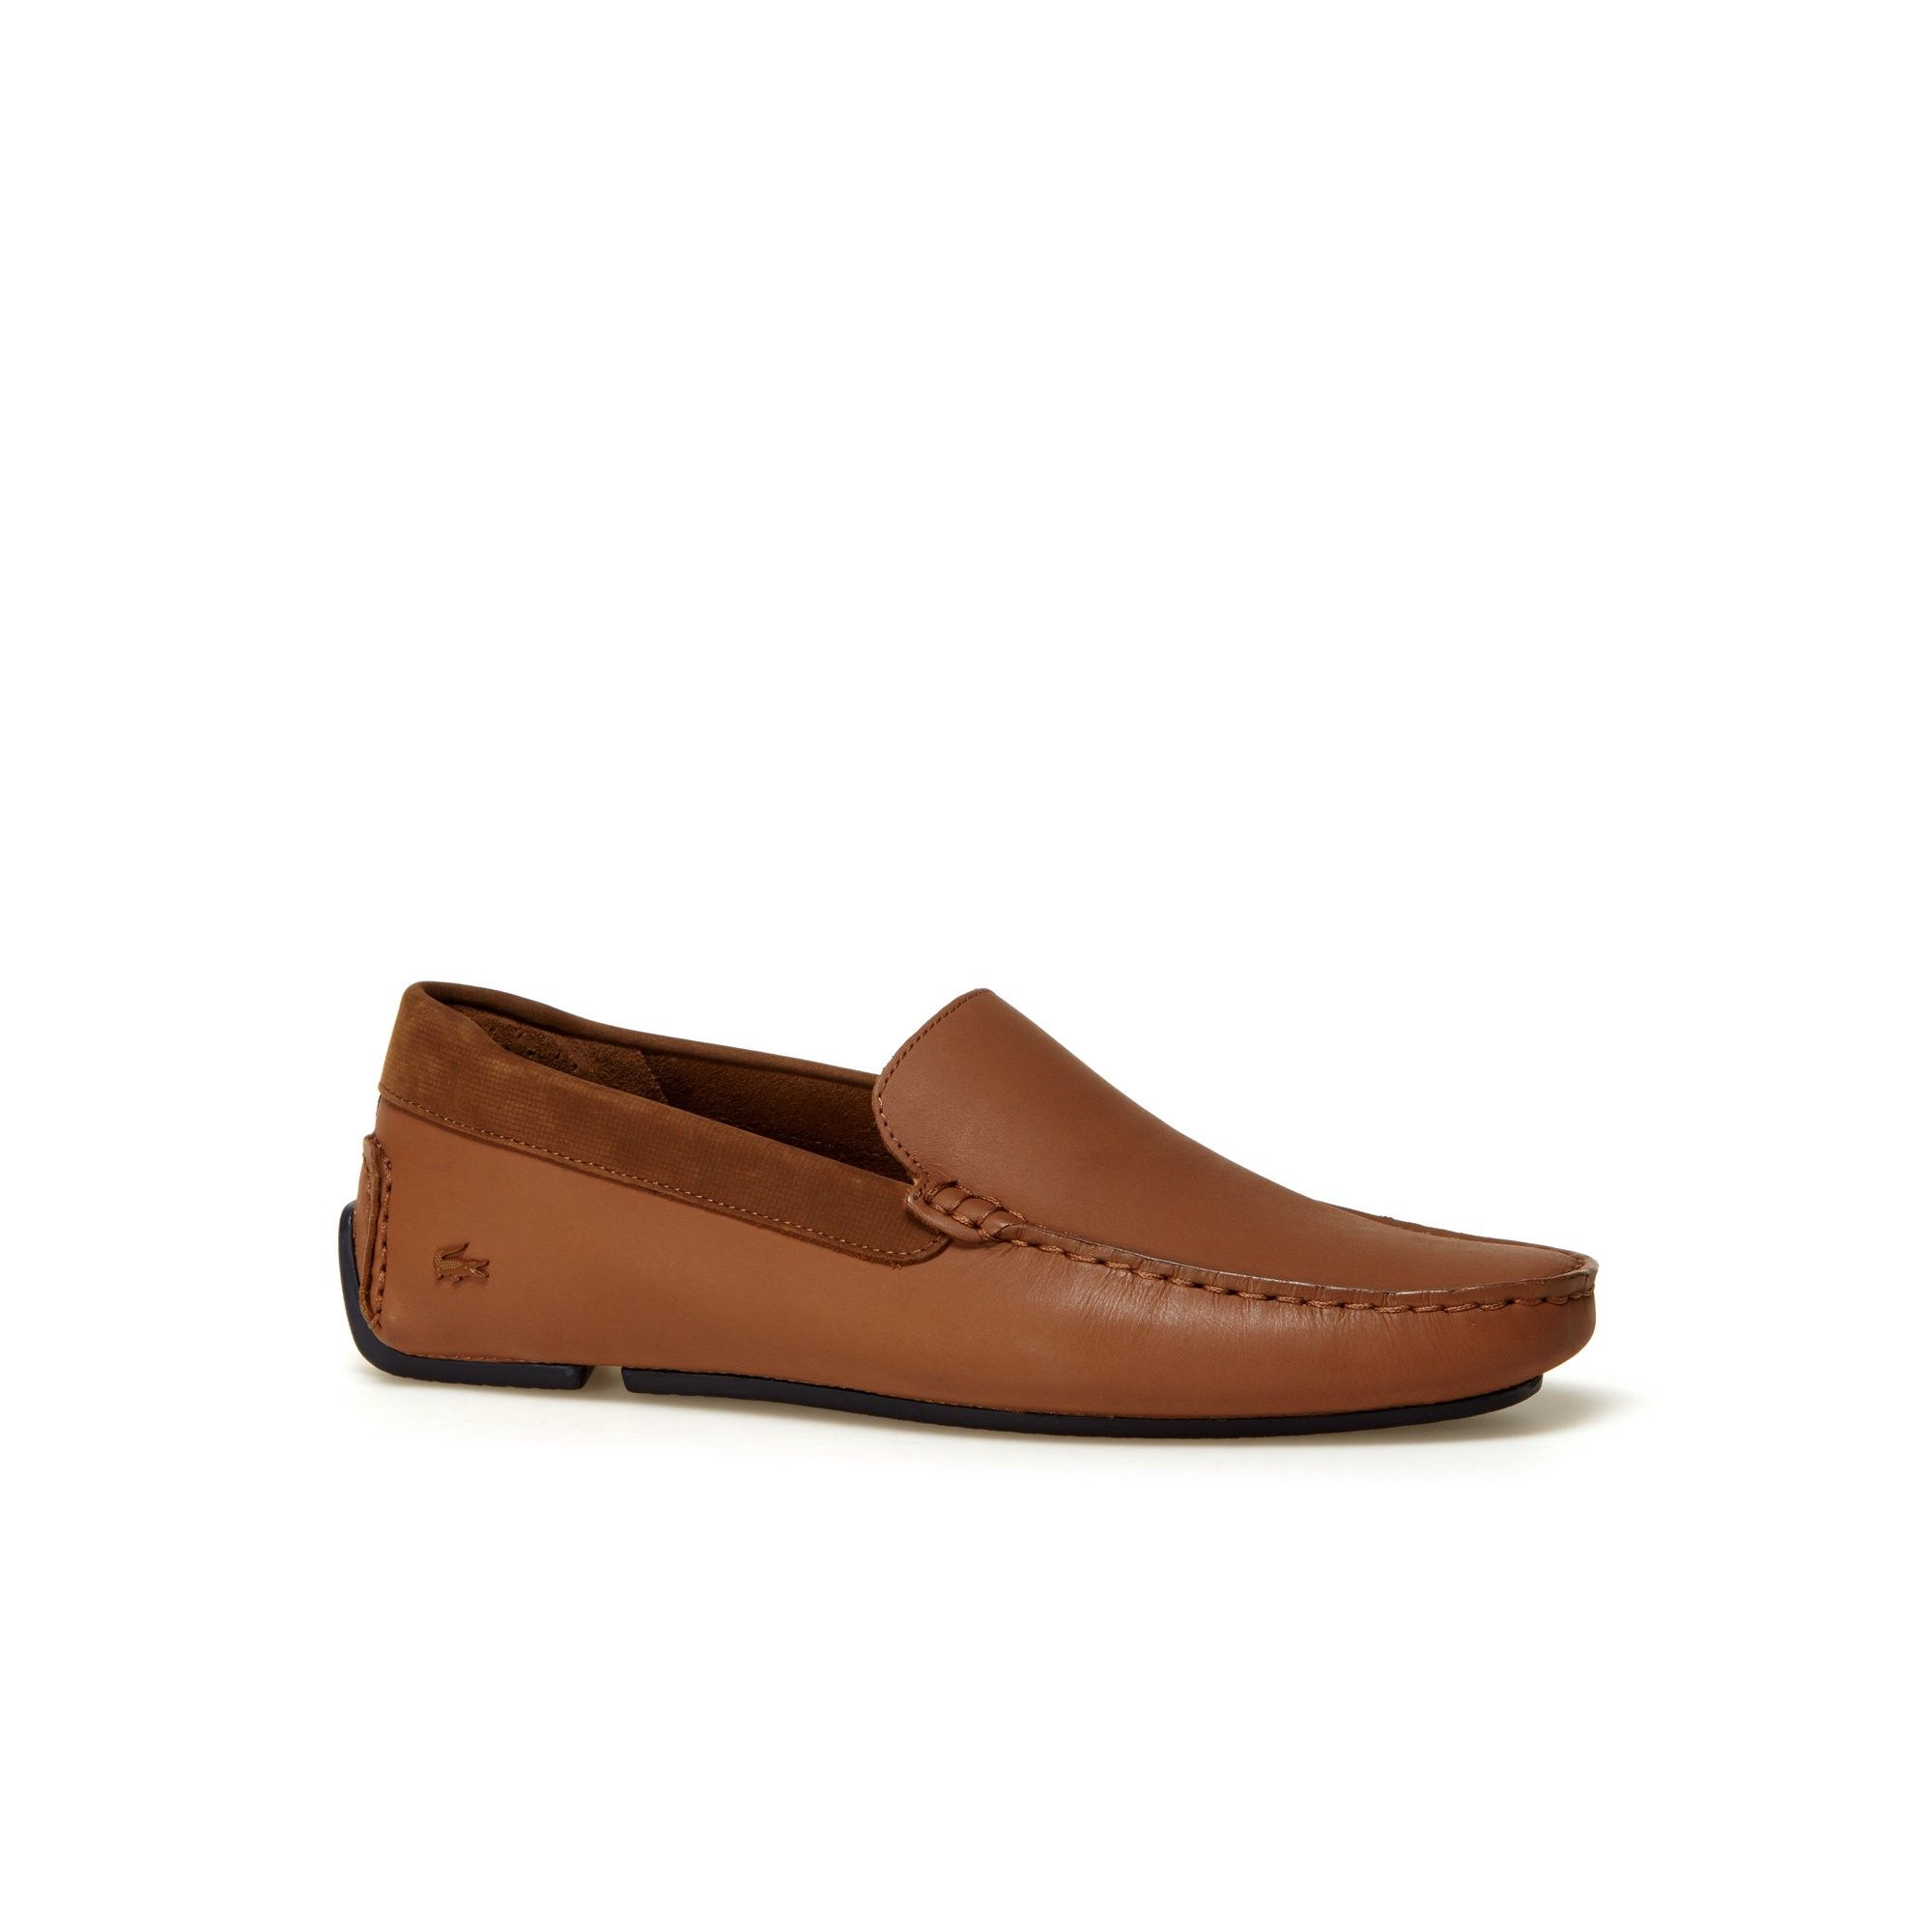 a7f84ac24 LACOSTE Men s Piloter Leather Moccasins - brown.  lacoste  shoes ...